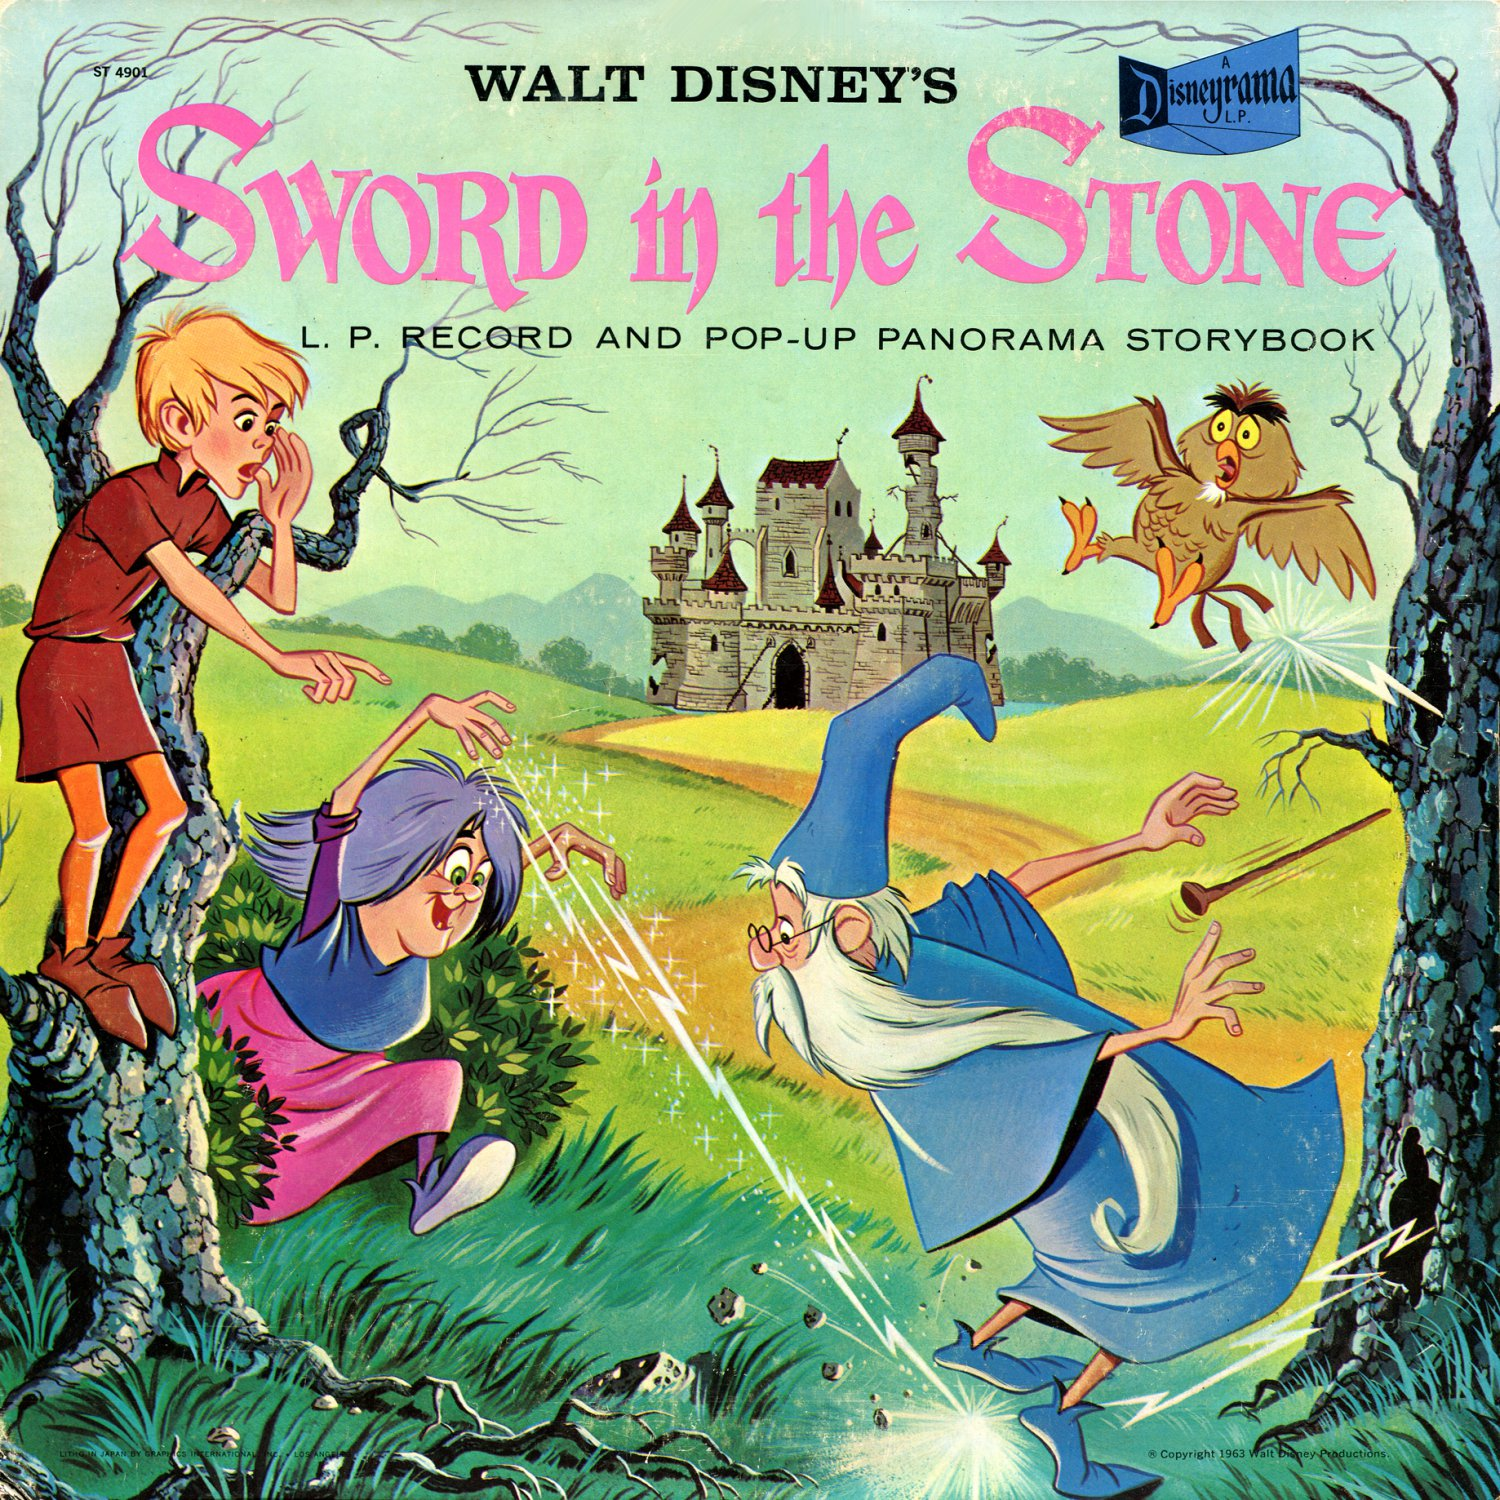 Walt Disney's Sword In The Stone - Disneyrama Story Soundtrack, Rare Pop-Up Edtion LP/CD